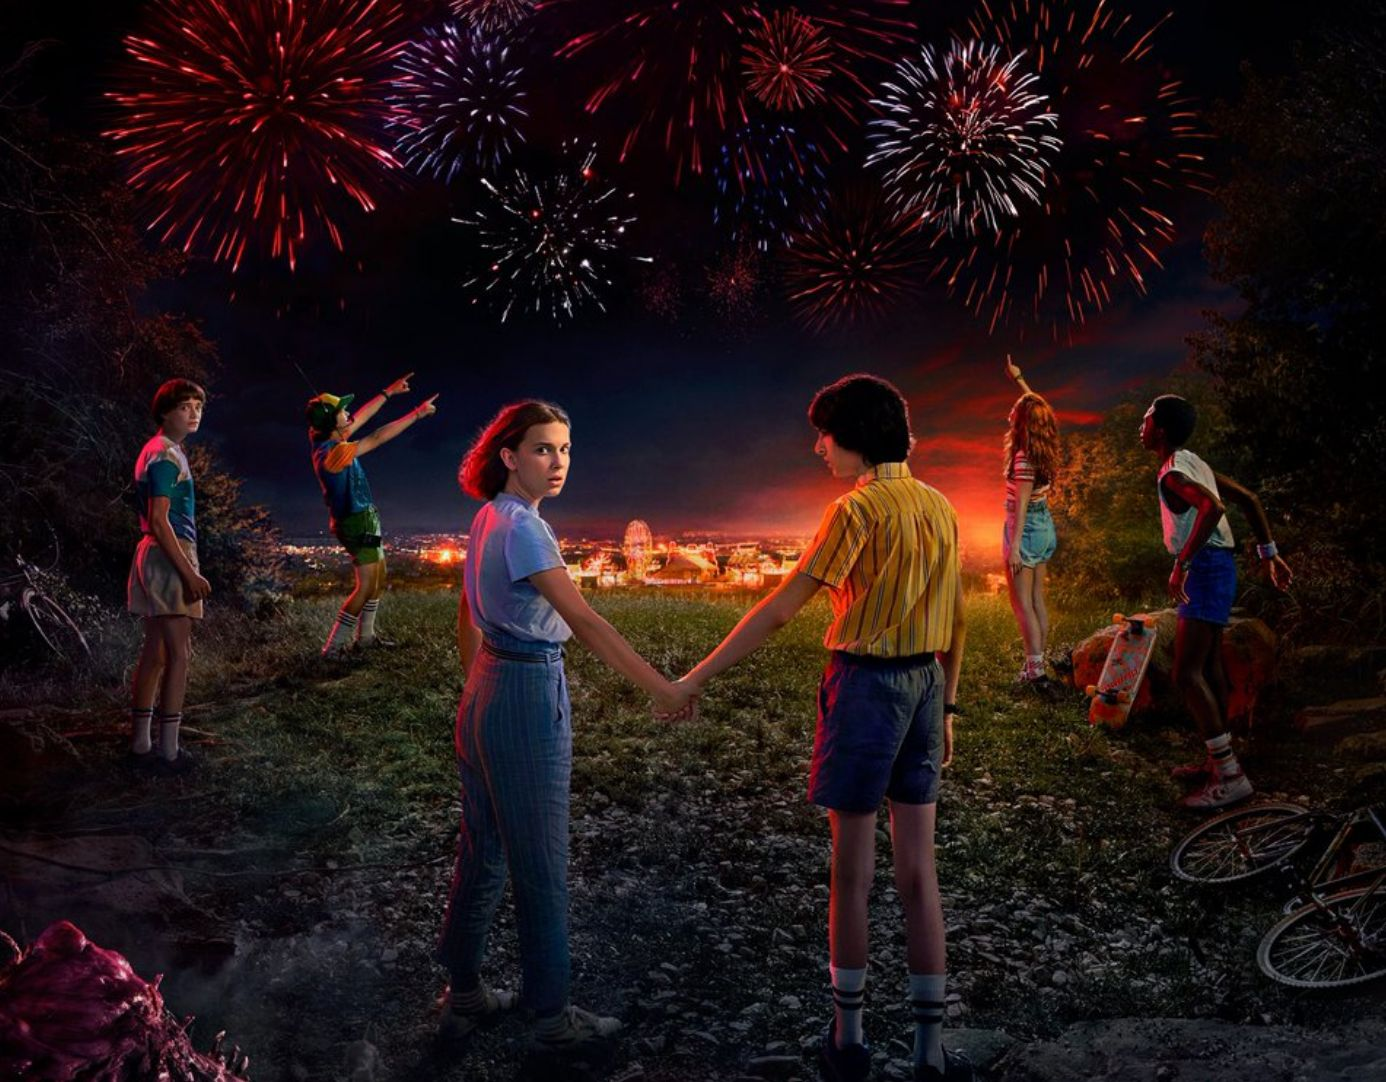 'Stranger Things' Announces Return Date In Eerie New Year's Day